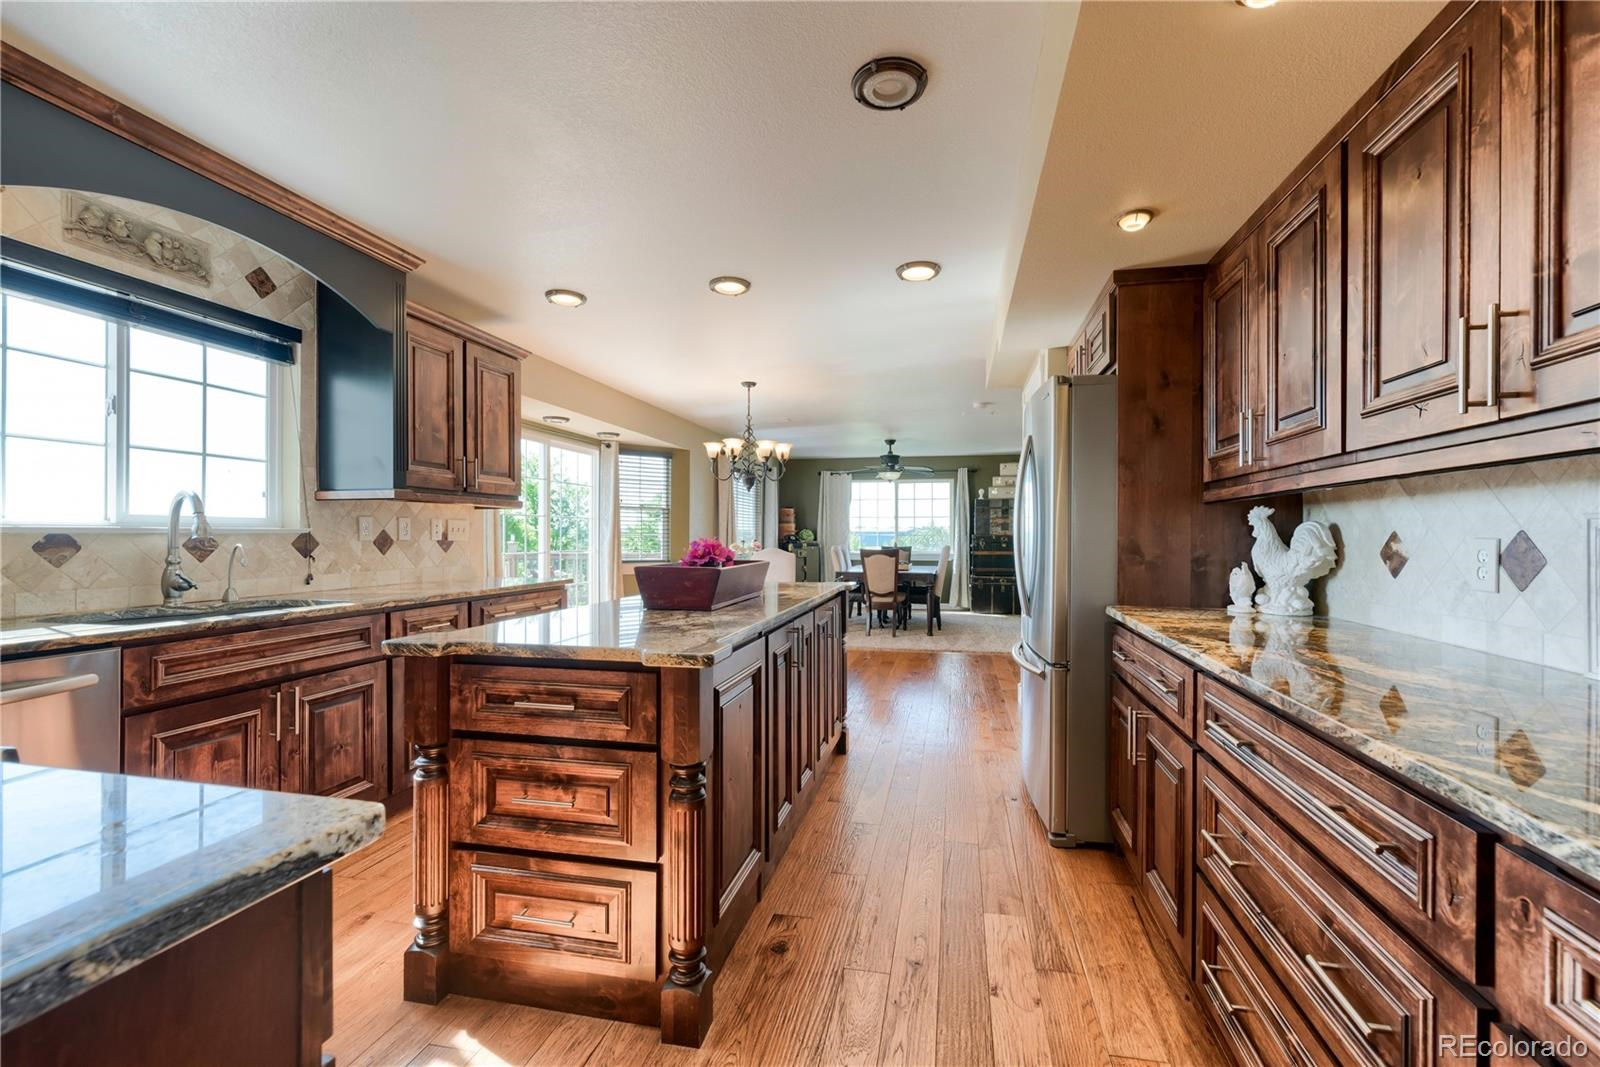 MLS# 8209539 - 15 - 8300 S Timberline Road, Fort Collins, CO 80525